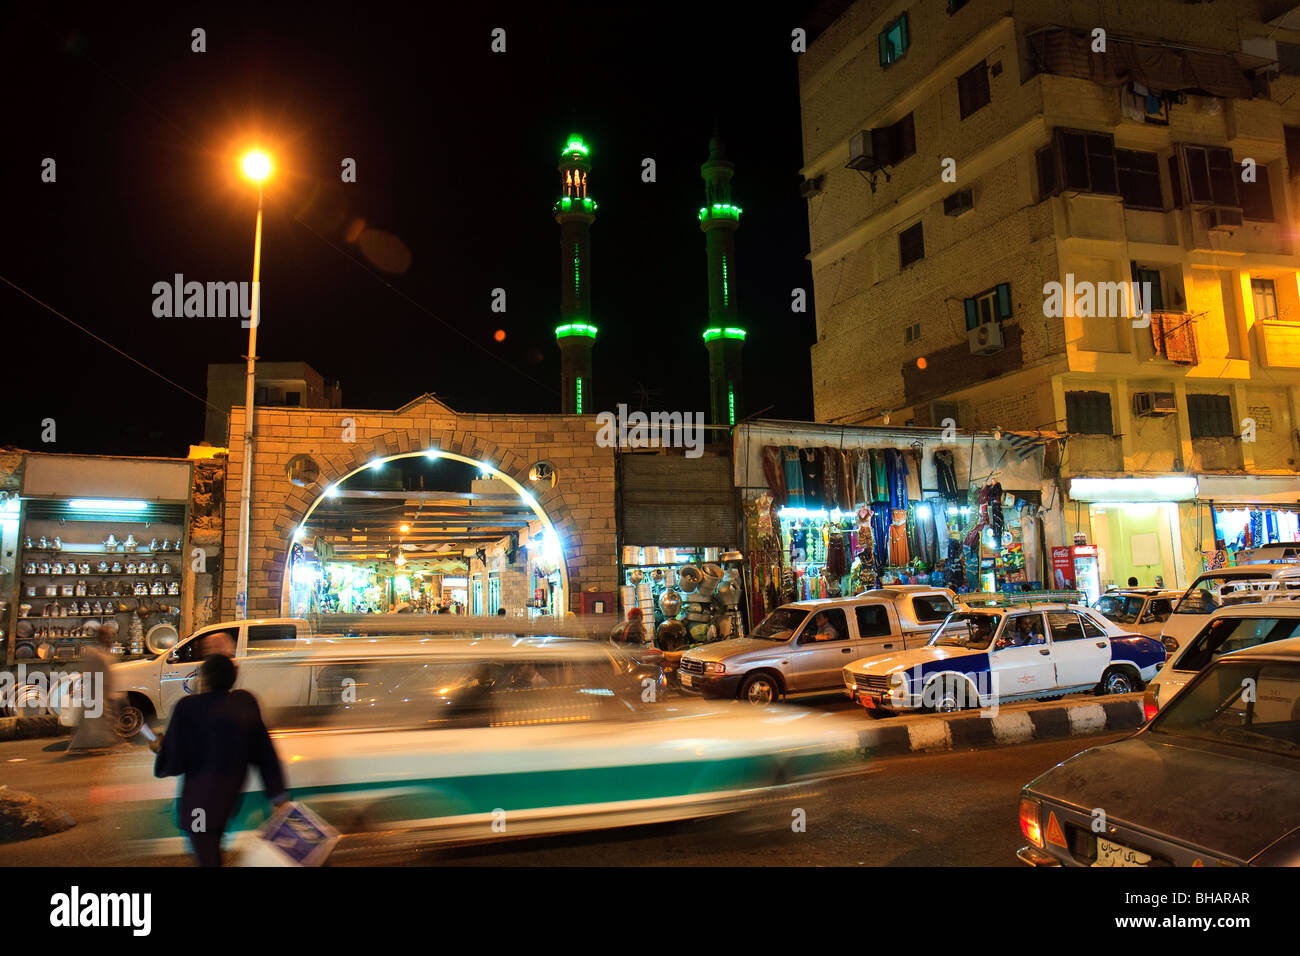 Africa Aswan Egypt Night Street Upper Egypt - Stock Image